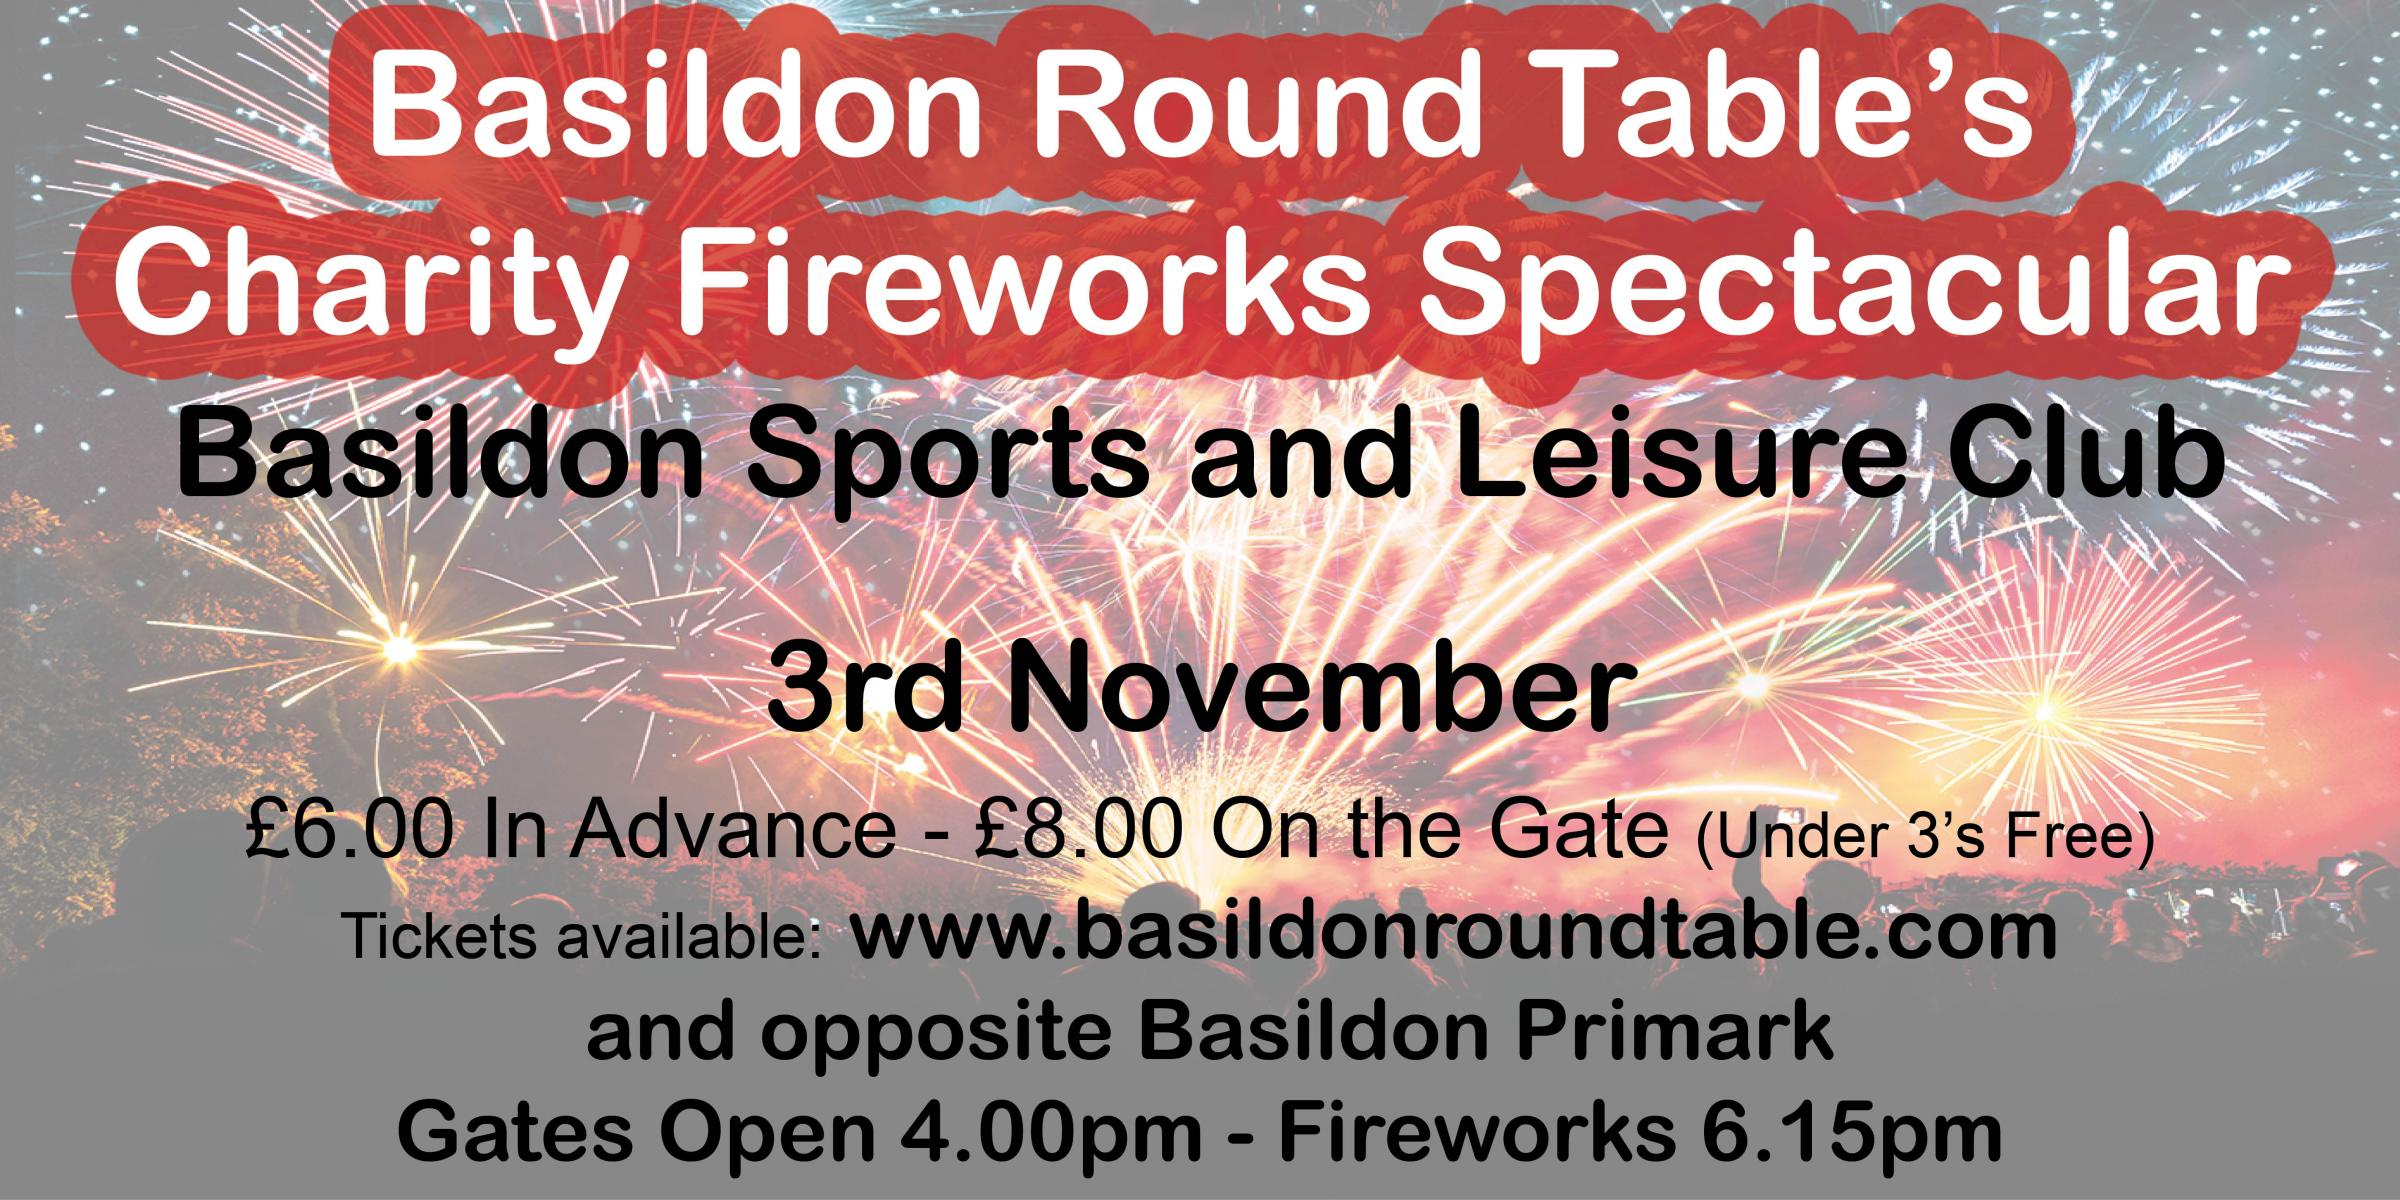 Basildon Round Table's Charity Fireworks Spectacualr 2019